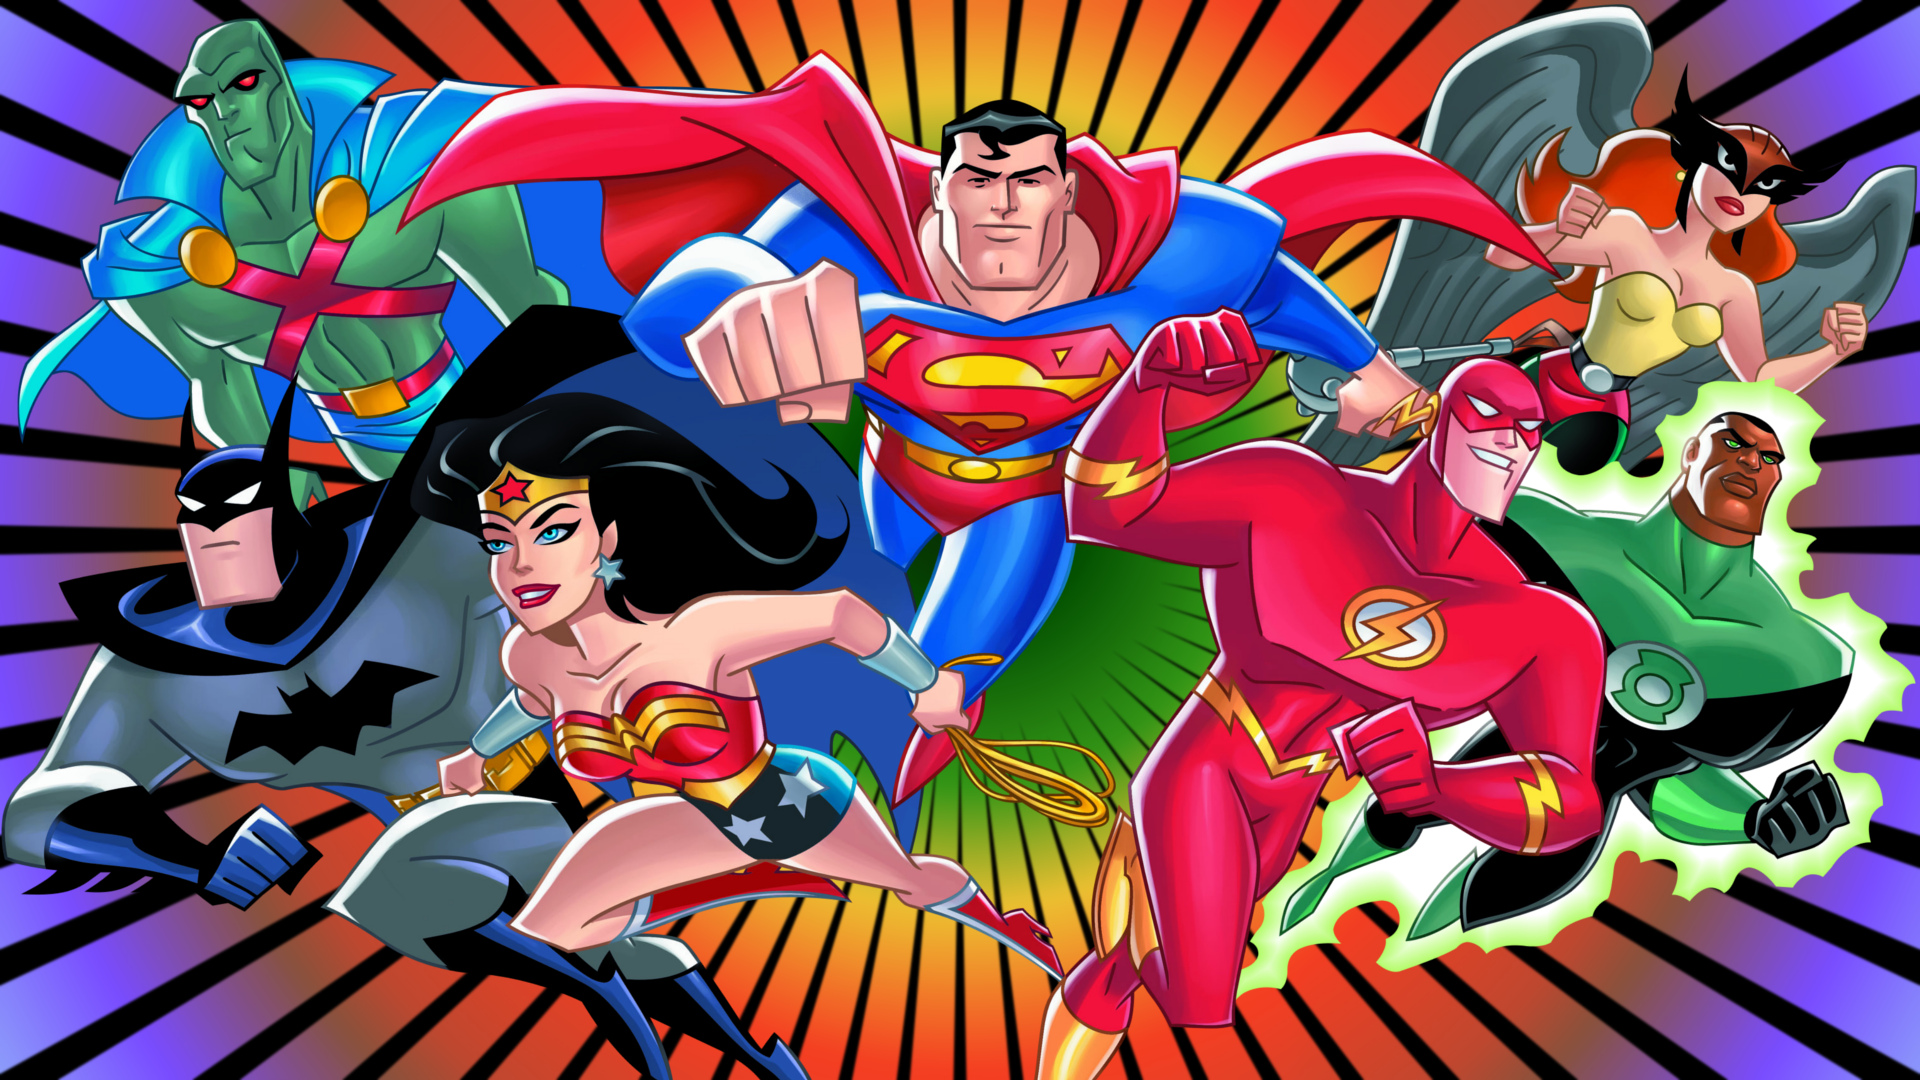 Free Justice League, Download Free Clip Art, Free Clip Art.